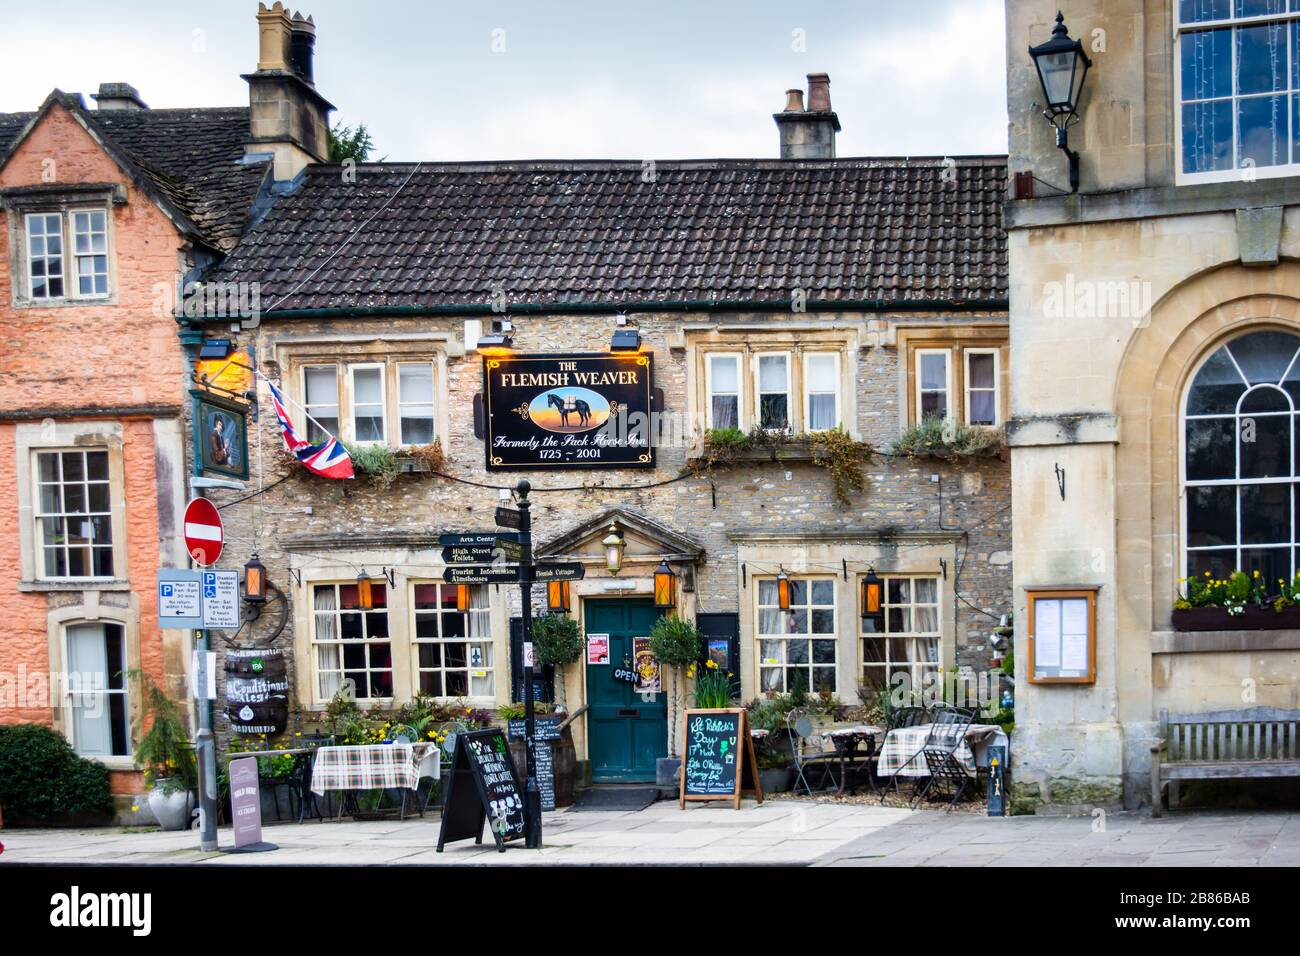 The Flemish Weaver  pub in Corsham Wiltshire with a sign declaring it was formally the Pack Horse Inn from 1725 to 2001 Stock Photo